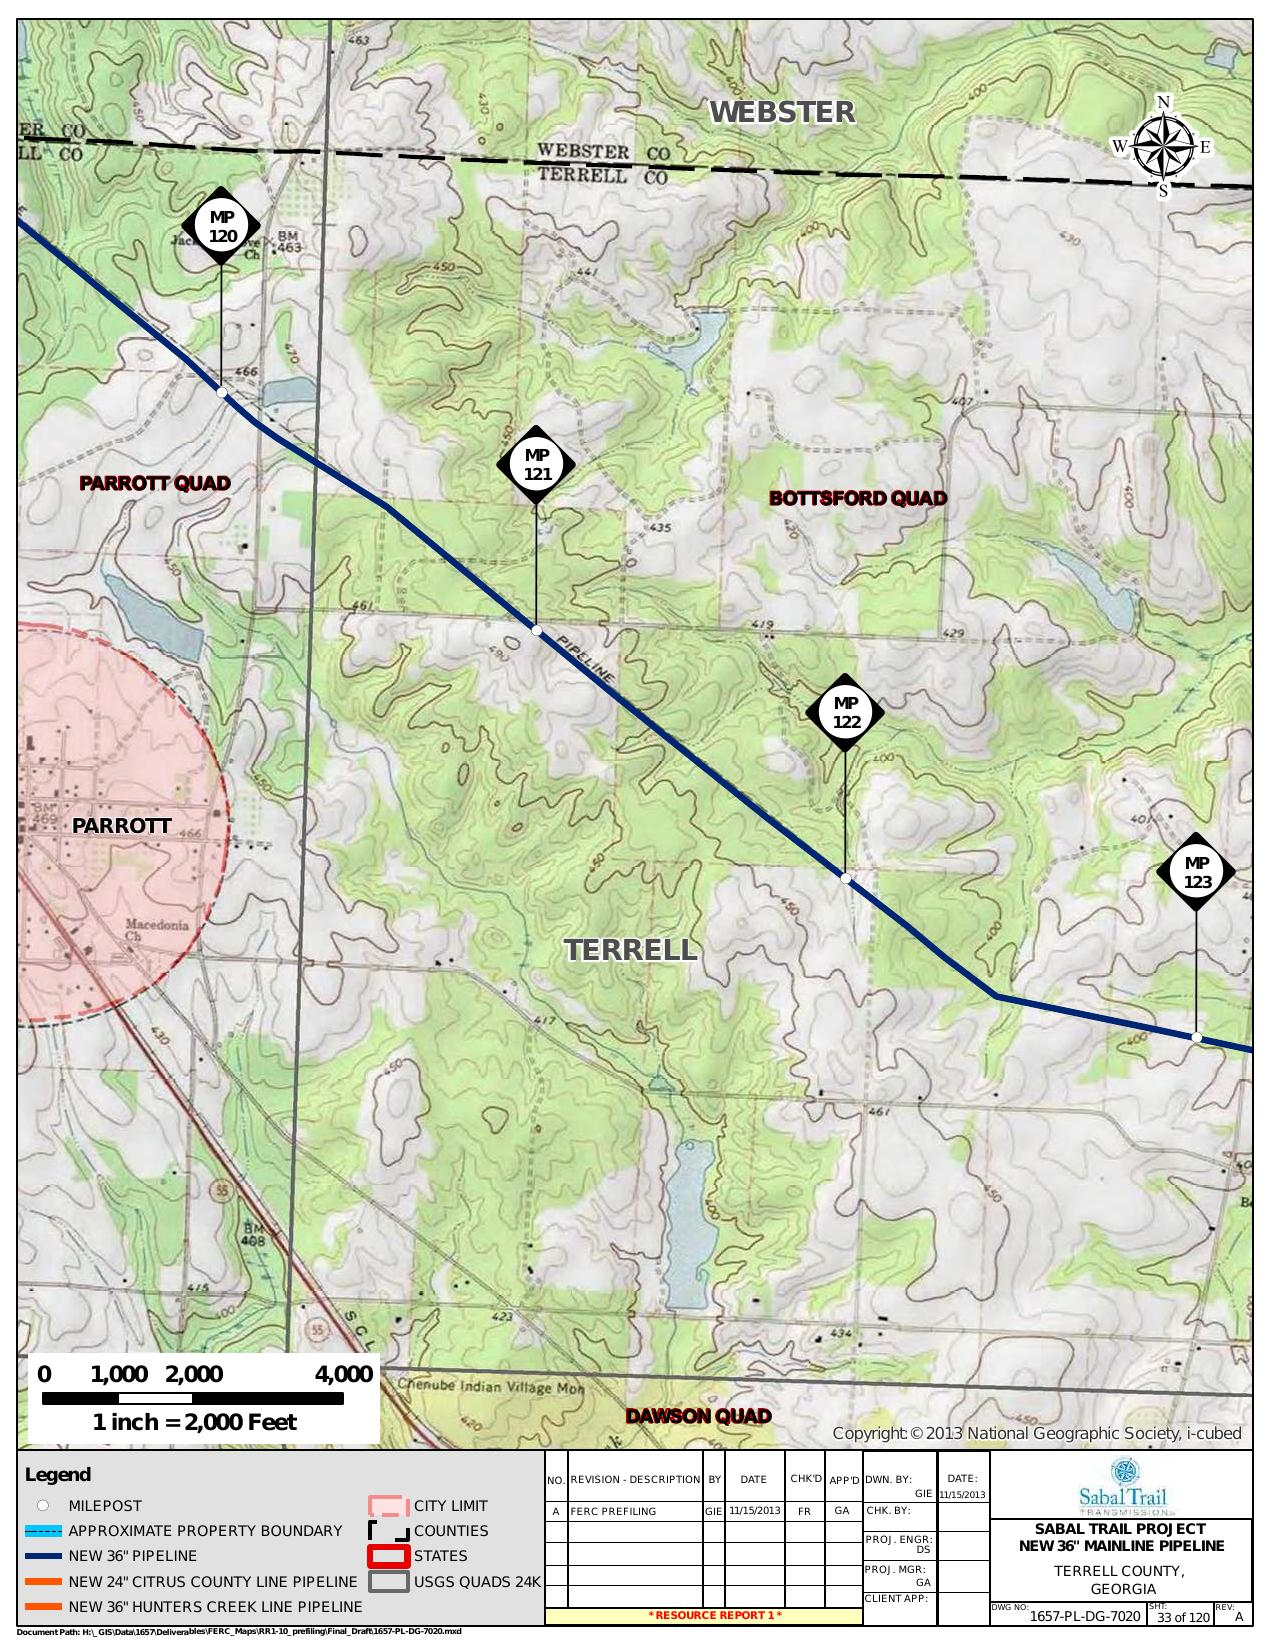 Parrott, Terrell County, Georgia, in General Project Description, by SpectraBusters, for FERC Docket No. PF14-1-000, 15 November 2013, converted by SpectraBusters